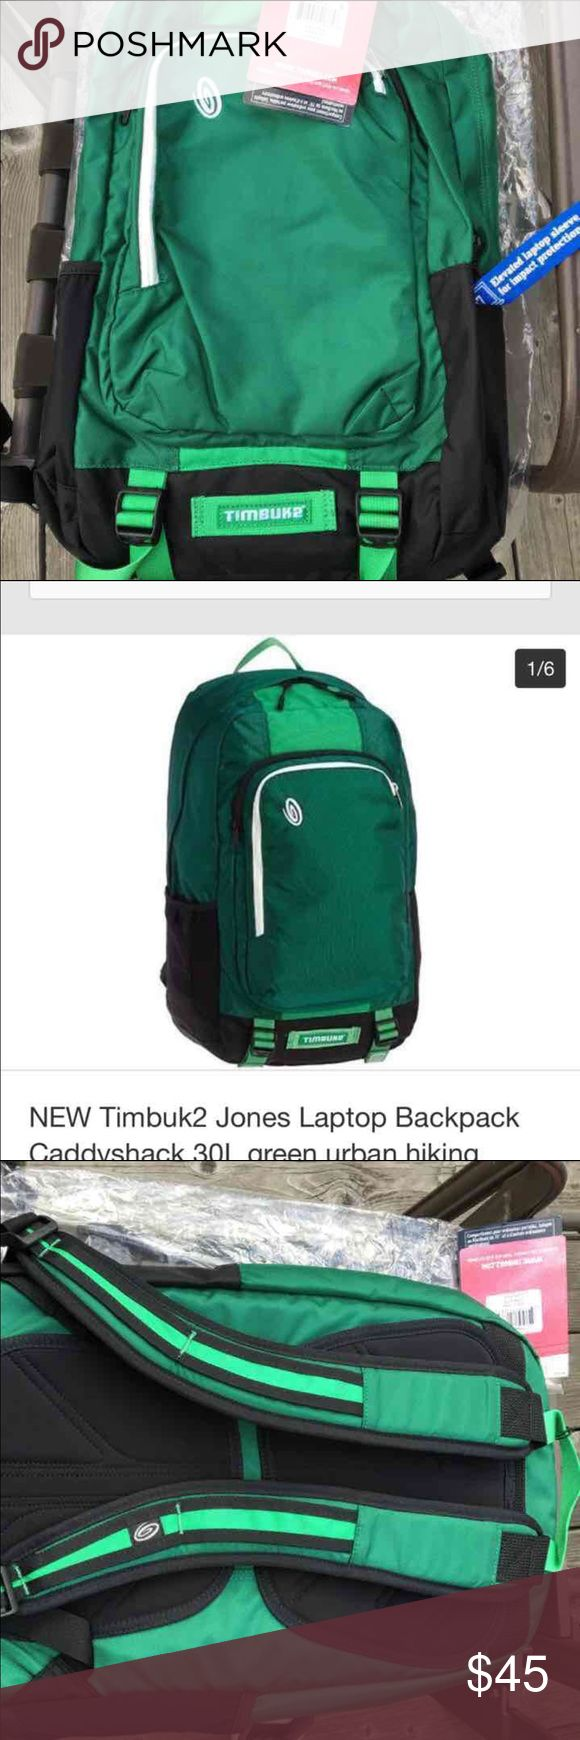 Timbuk2 backpack with laptop sleeve Green color Timbuk2 backpack with laptop sleeve Green color Perfect for college  Perfect for school Perfect for work San Francisco design      Please check out our store :) We have UGG, NIKE, The North Face, Under Armour, Trina Turk, Ralph Lauren, Gymboree for boys and girls, Puma, Abercrombie & Fitch, Lacoste, Tommy Bahama, Steve Madden, Stride Rite, Gap & more  We love to hunt for great deals to pass on to you!!! We carry dress, blouses, handbags, boys…